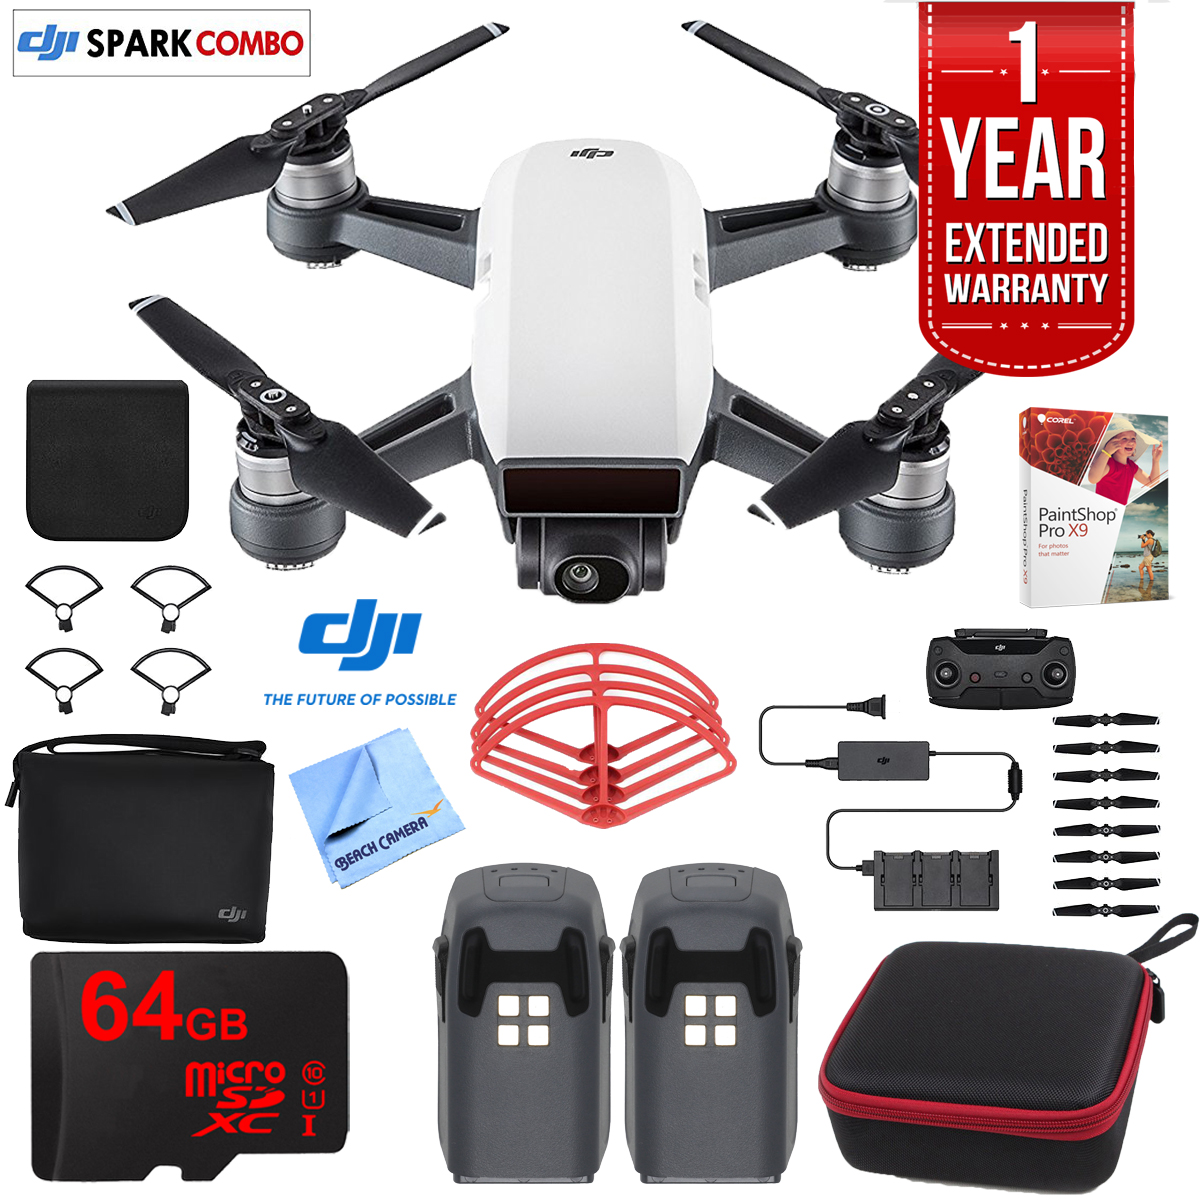 DJI SPARK Fly More Drone Combo (Alpine White) With Custom Hard Case, 64GB High Speed Card,... by DJI